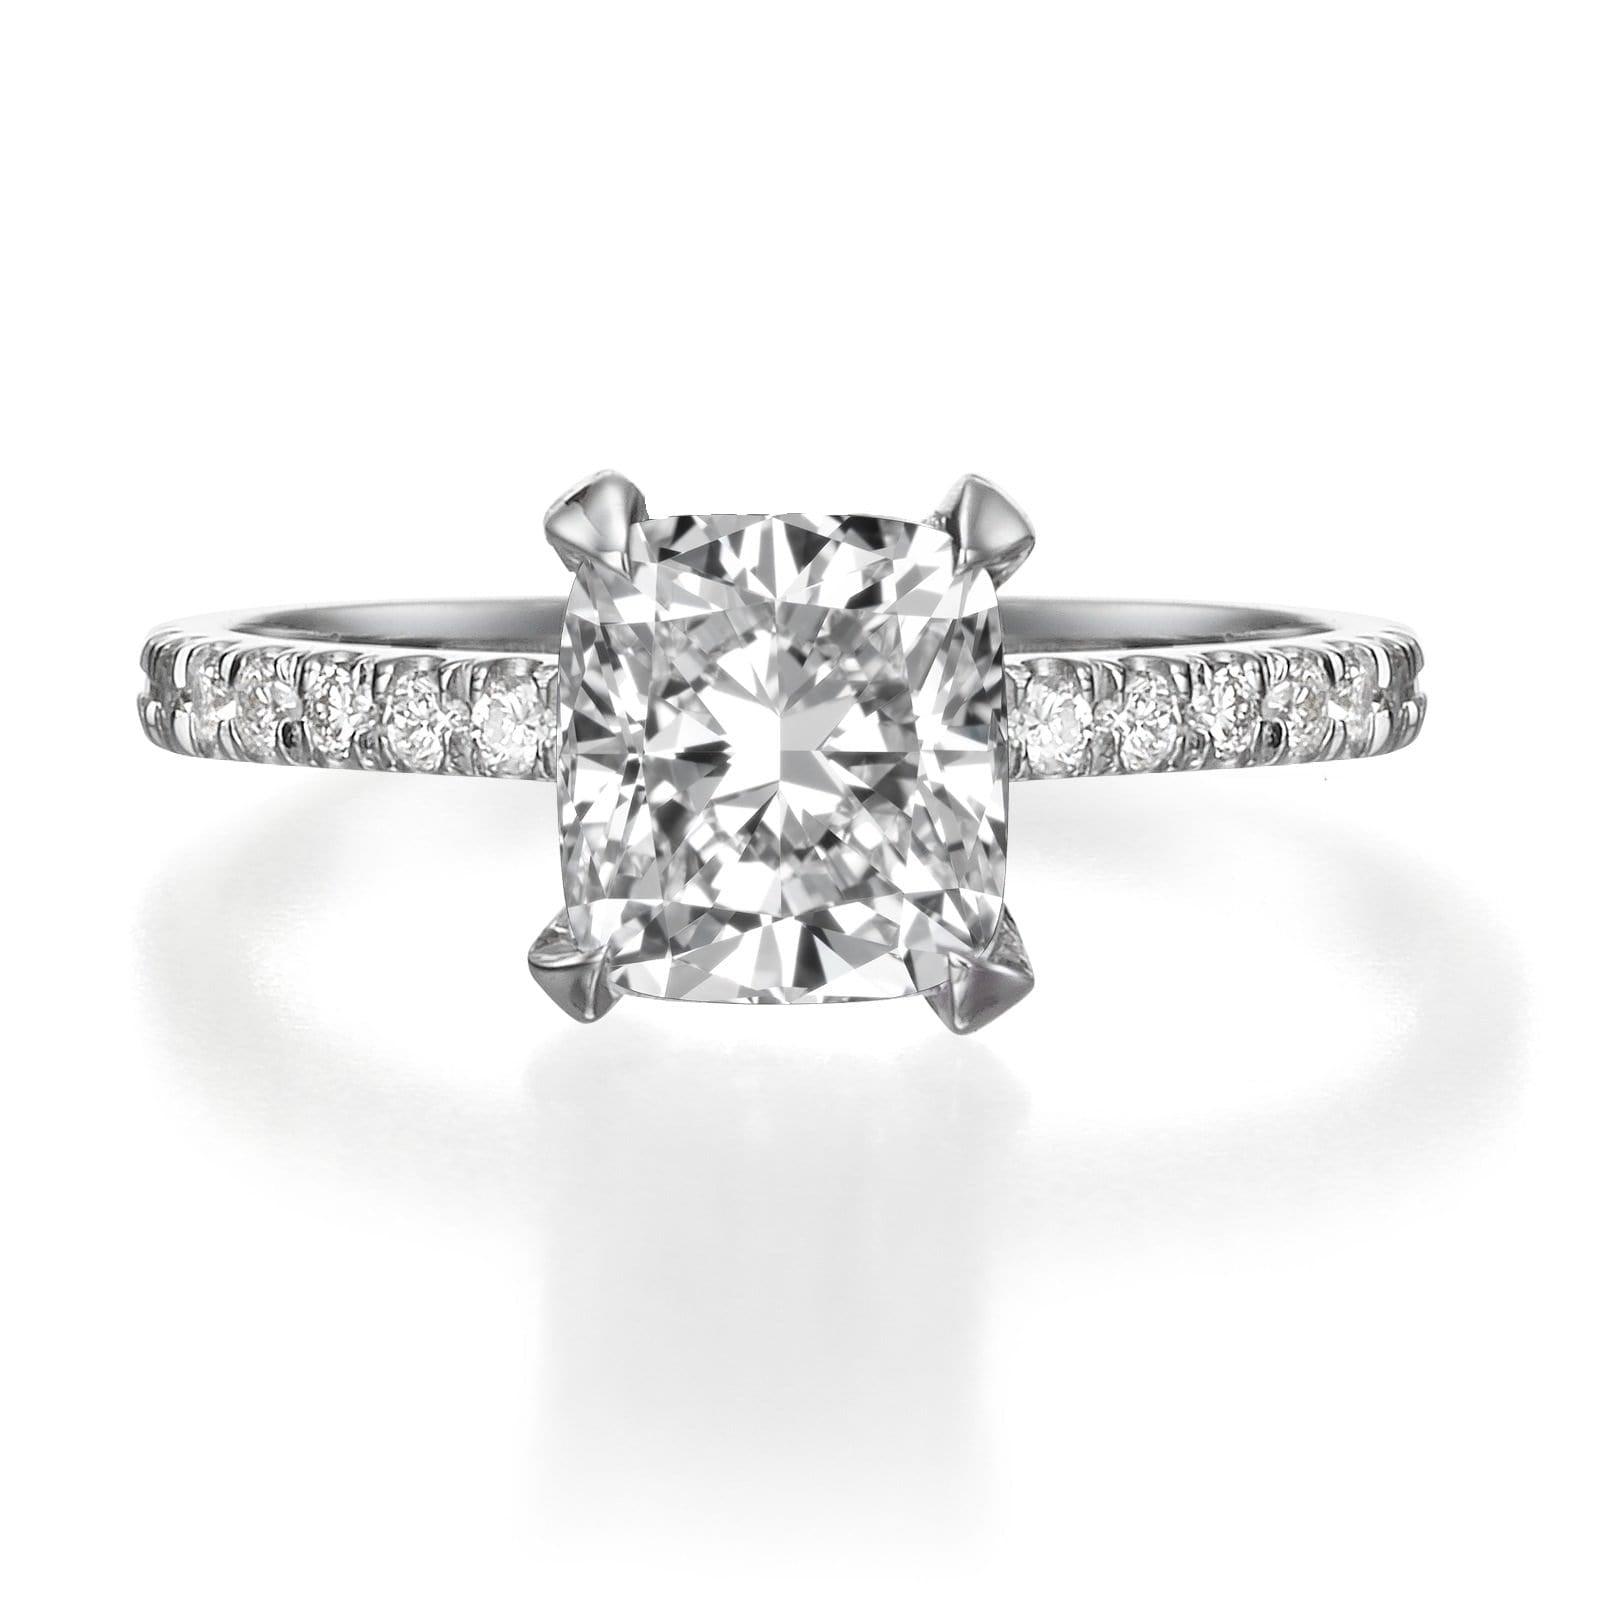 jewelers size engagement idea awesome kay new of harry winston wedding outlet full rings